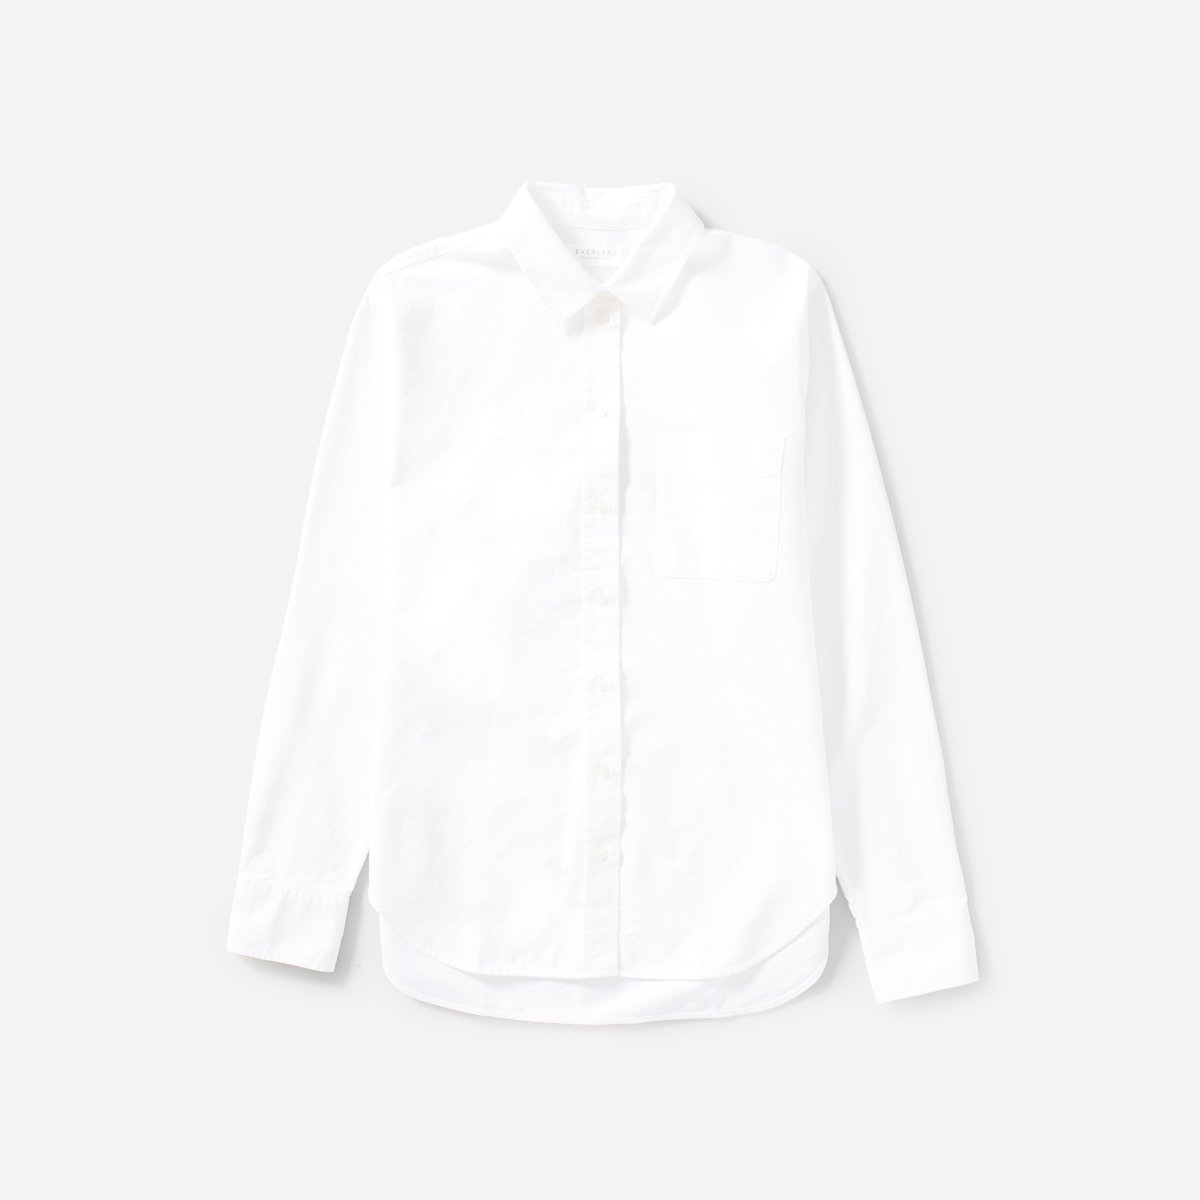 White Blouse - A crisp white button down shirt is a piece that will never go out of style. It can be worn with jeans, slacks, skirts, etc.